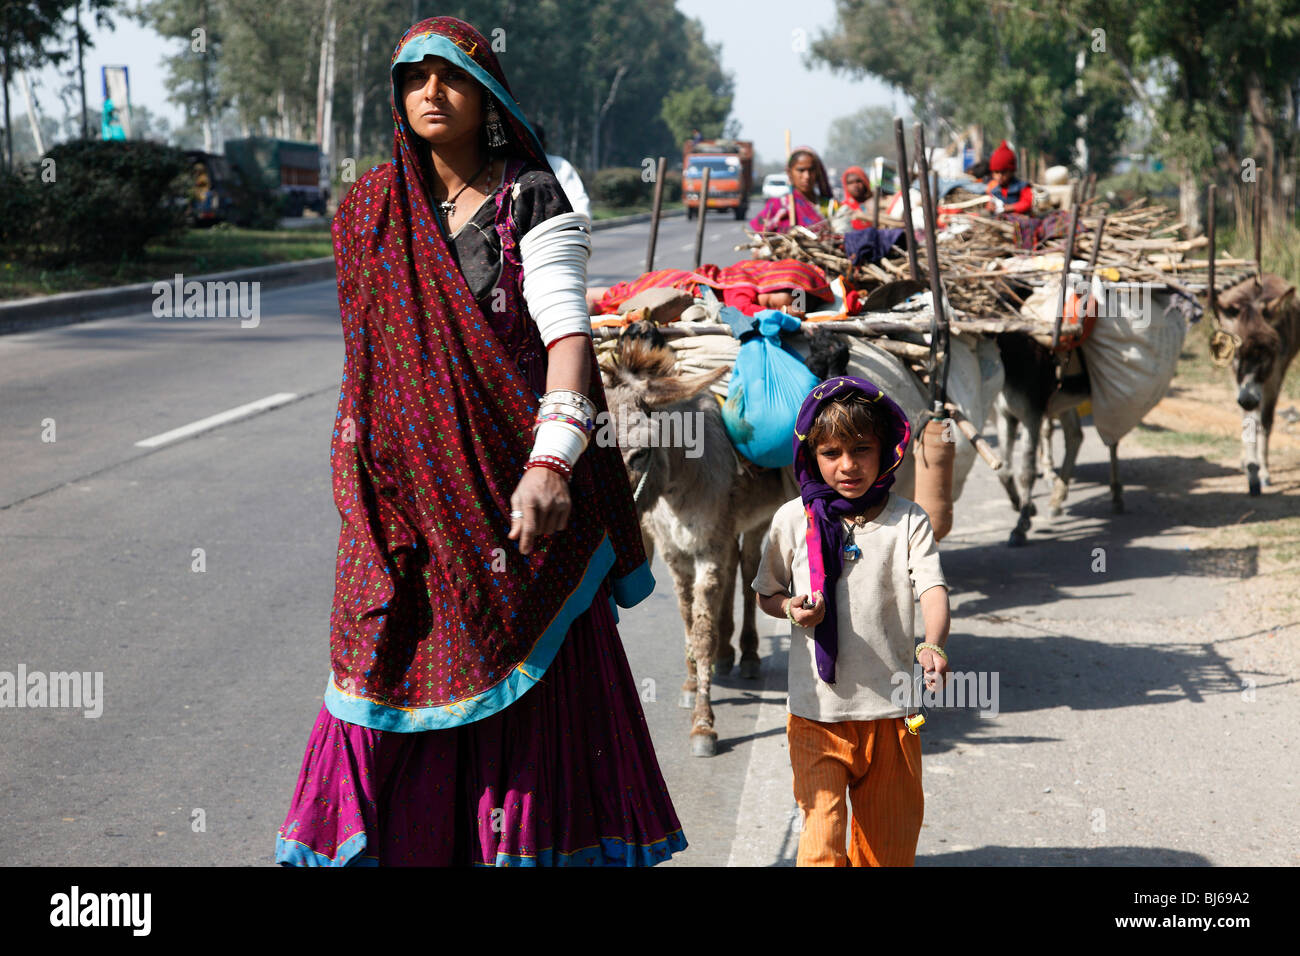 Indian nomads on the move. - Stock Image